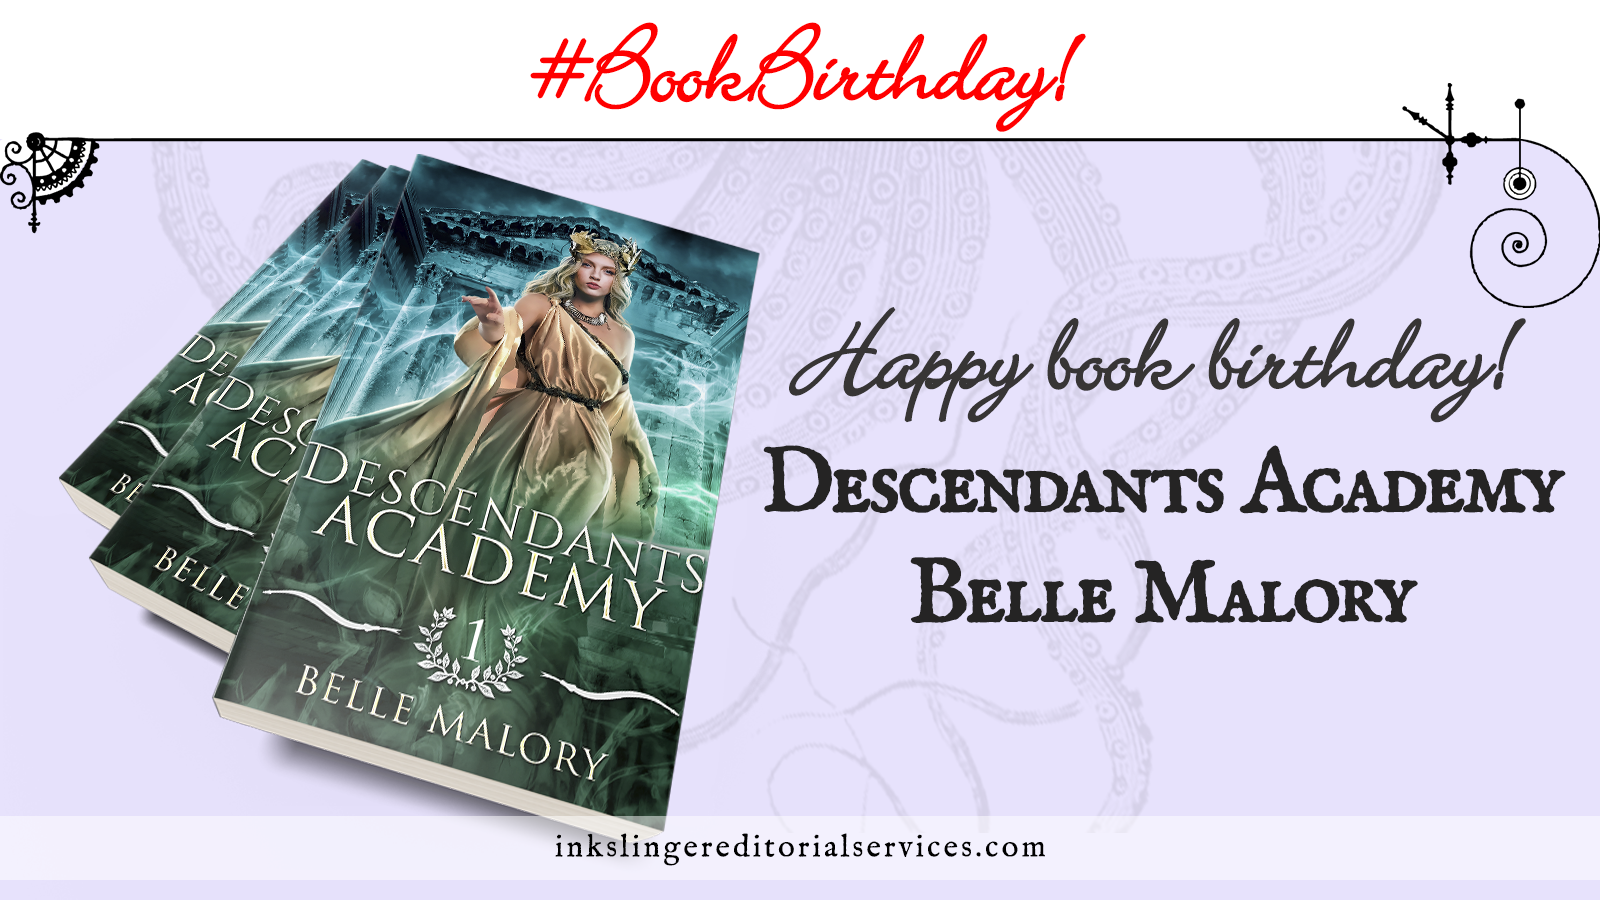 Book birthday: Descendants Academy by Belle Malory A stack of three copies of the book over a lavender field. The cover has a young teen with wreath crown and flowing blond hair. She wears a golden toga as she reaches toward the reader. She stands in front of an ancient Greek building with a glowing energy flowing around her.